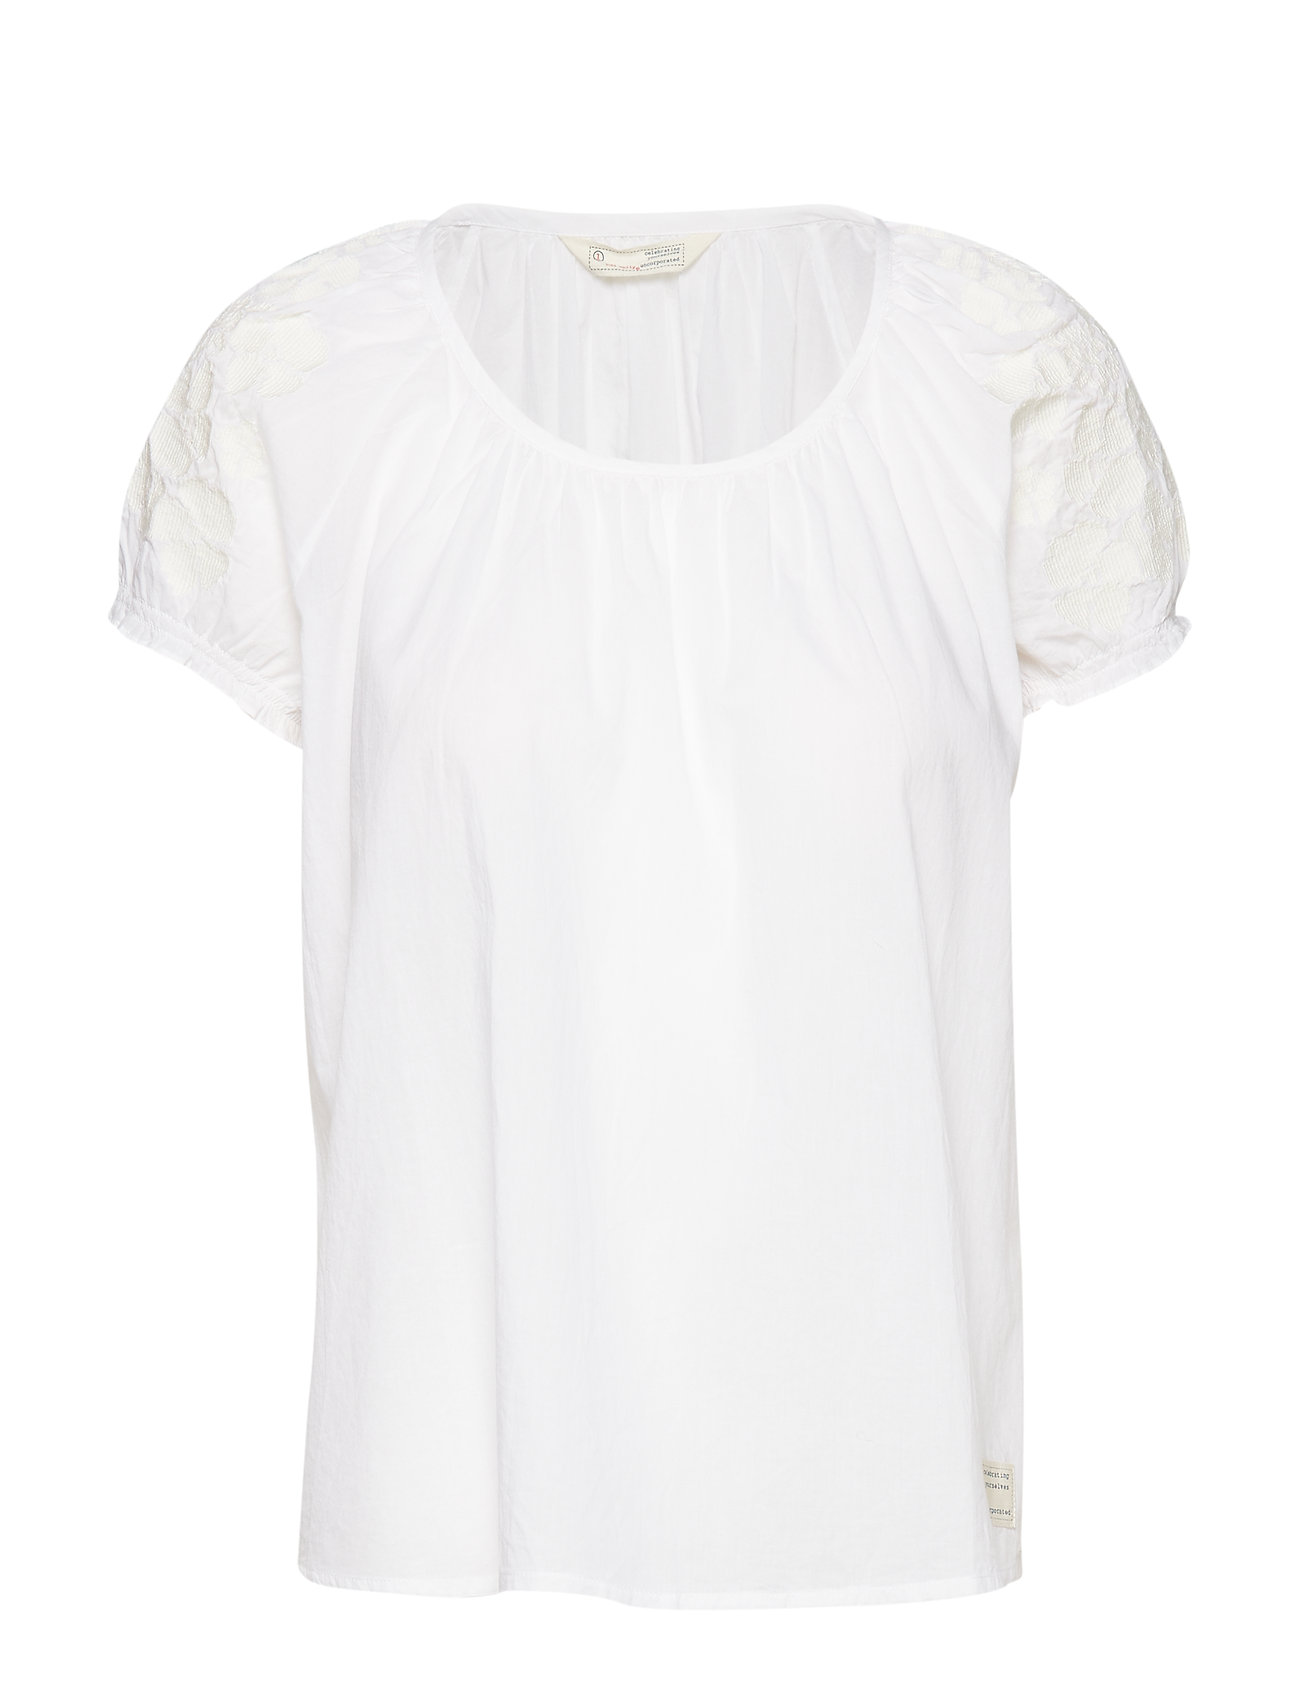 ODD MOLLY wooo-hooo blouse - BRIGHT WHITE